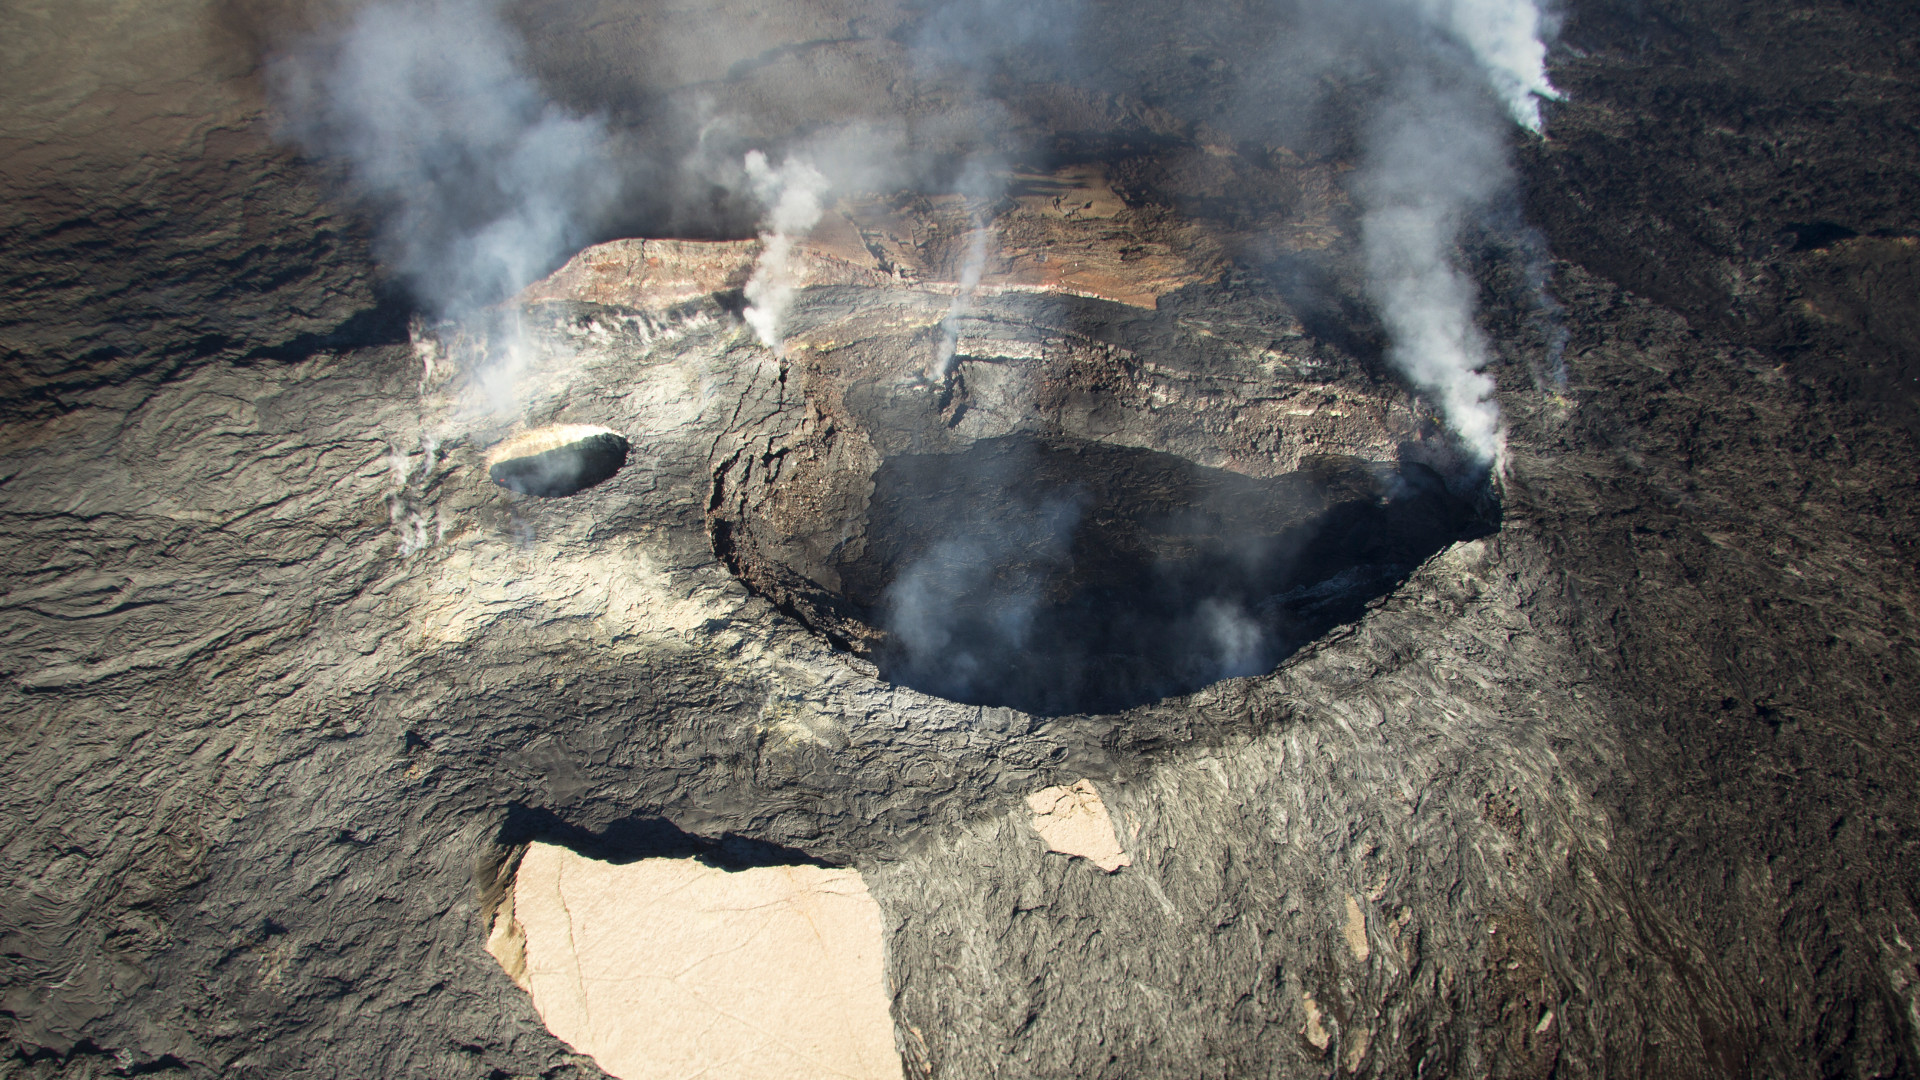 VIDEO: Recent Volcanic Activity At Pu'u O'o Explained